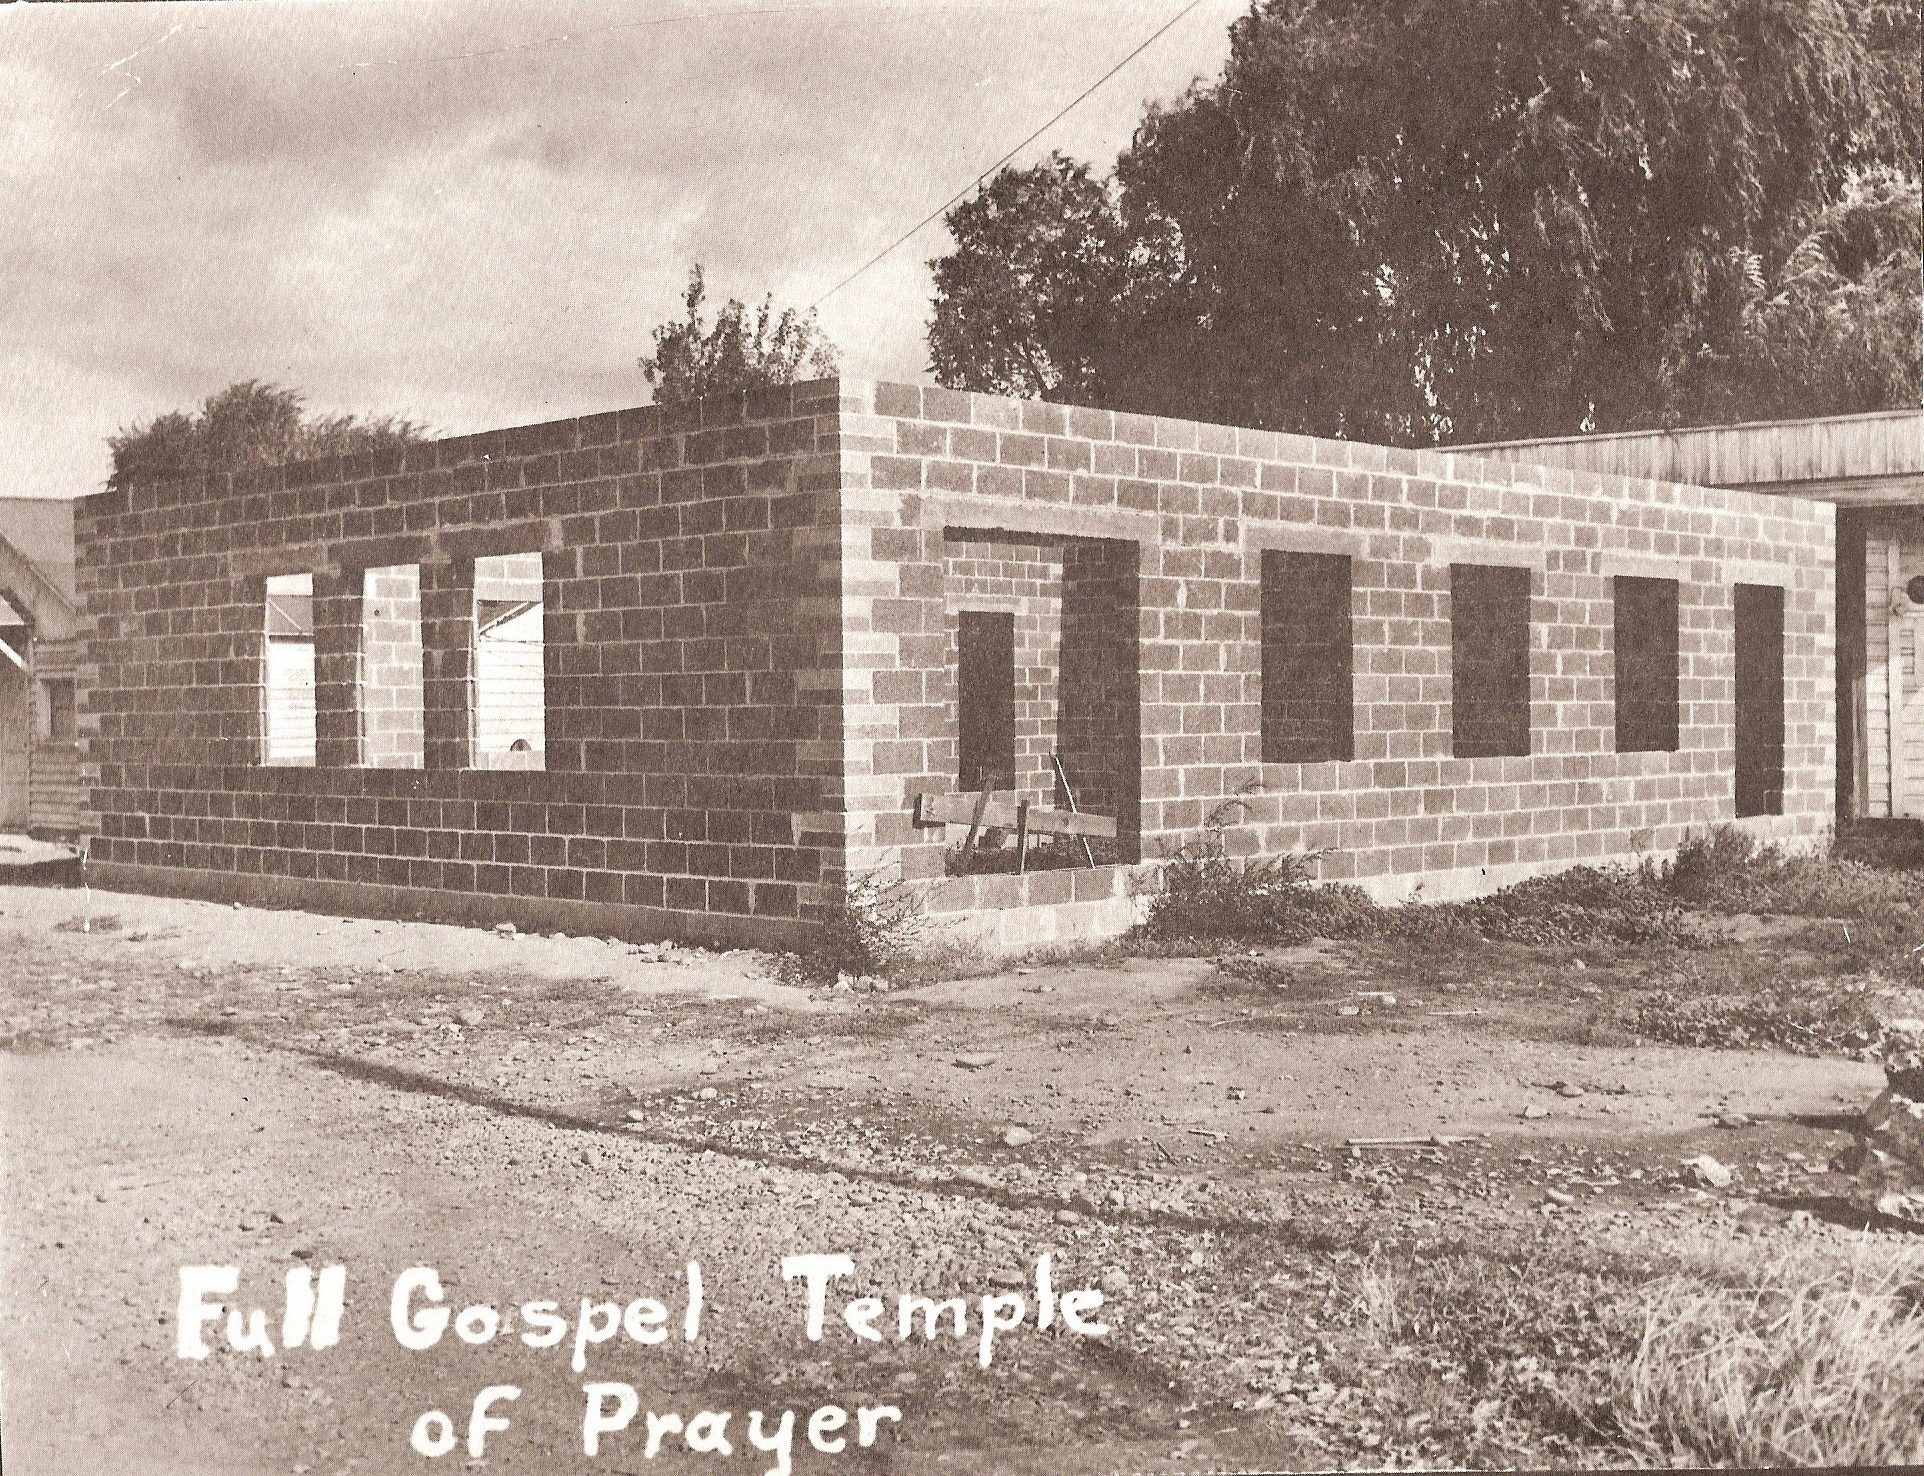 Full Gospel Temple of Prayer